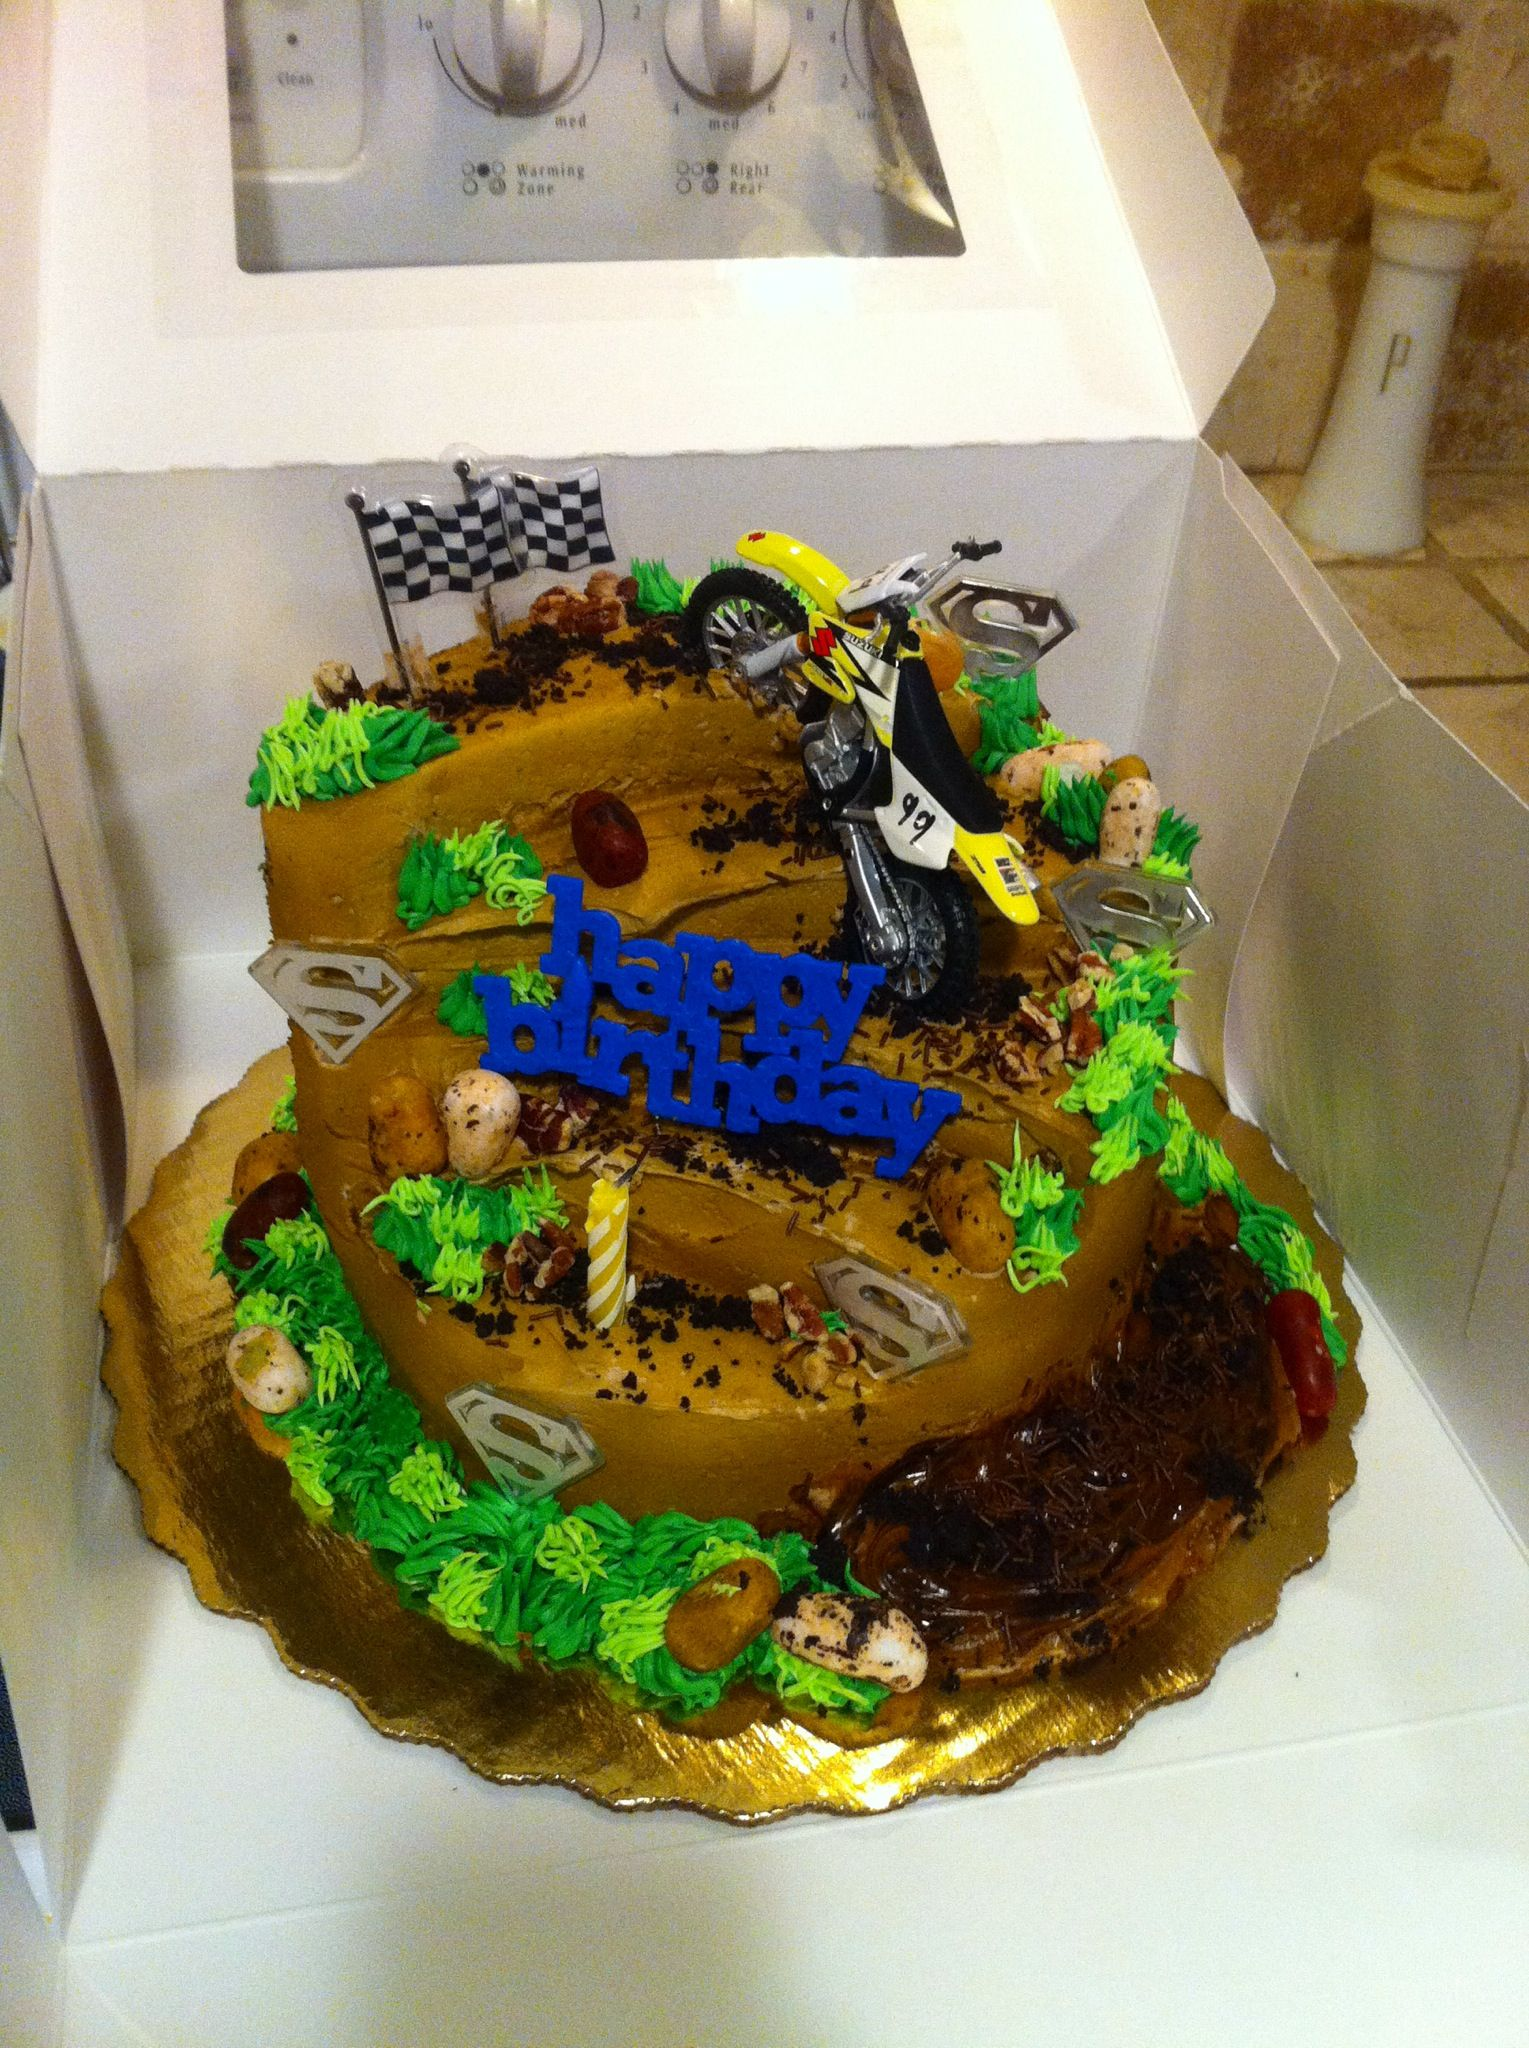 20 Motorcycle Cake Publix Pictures And Ideas On Meta Networks